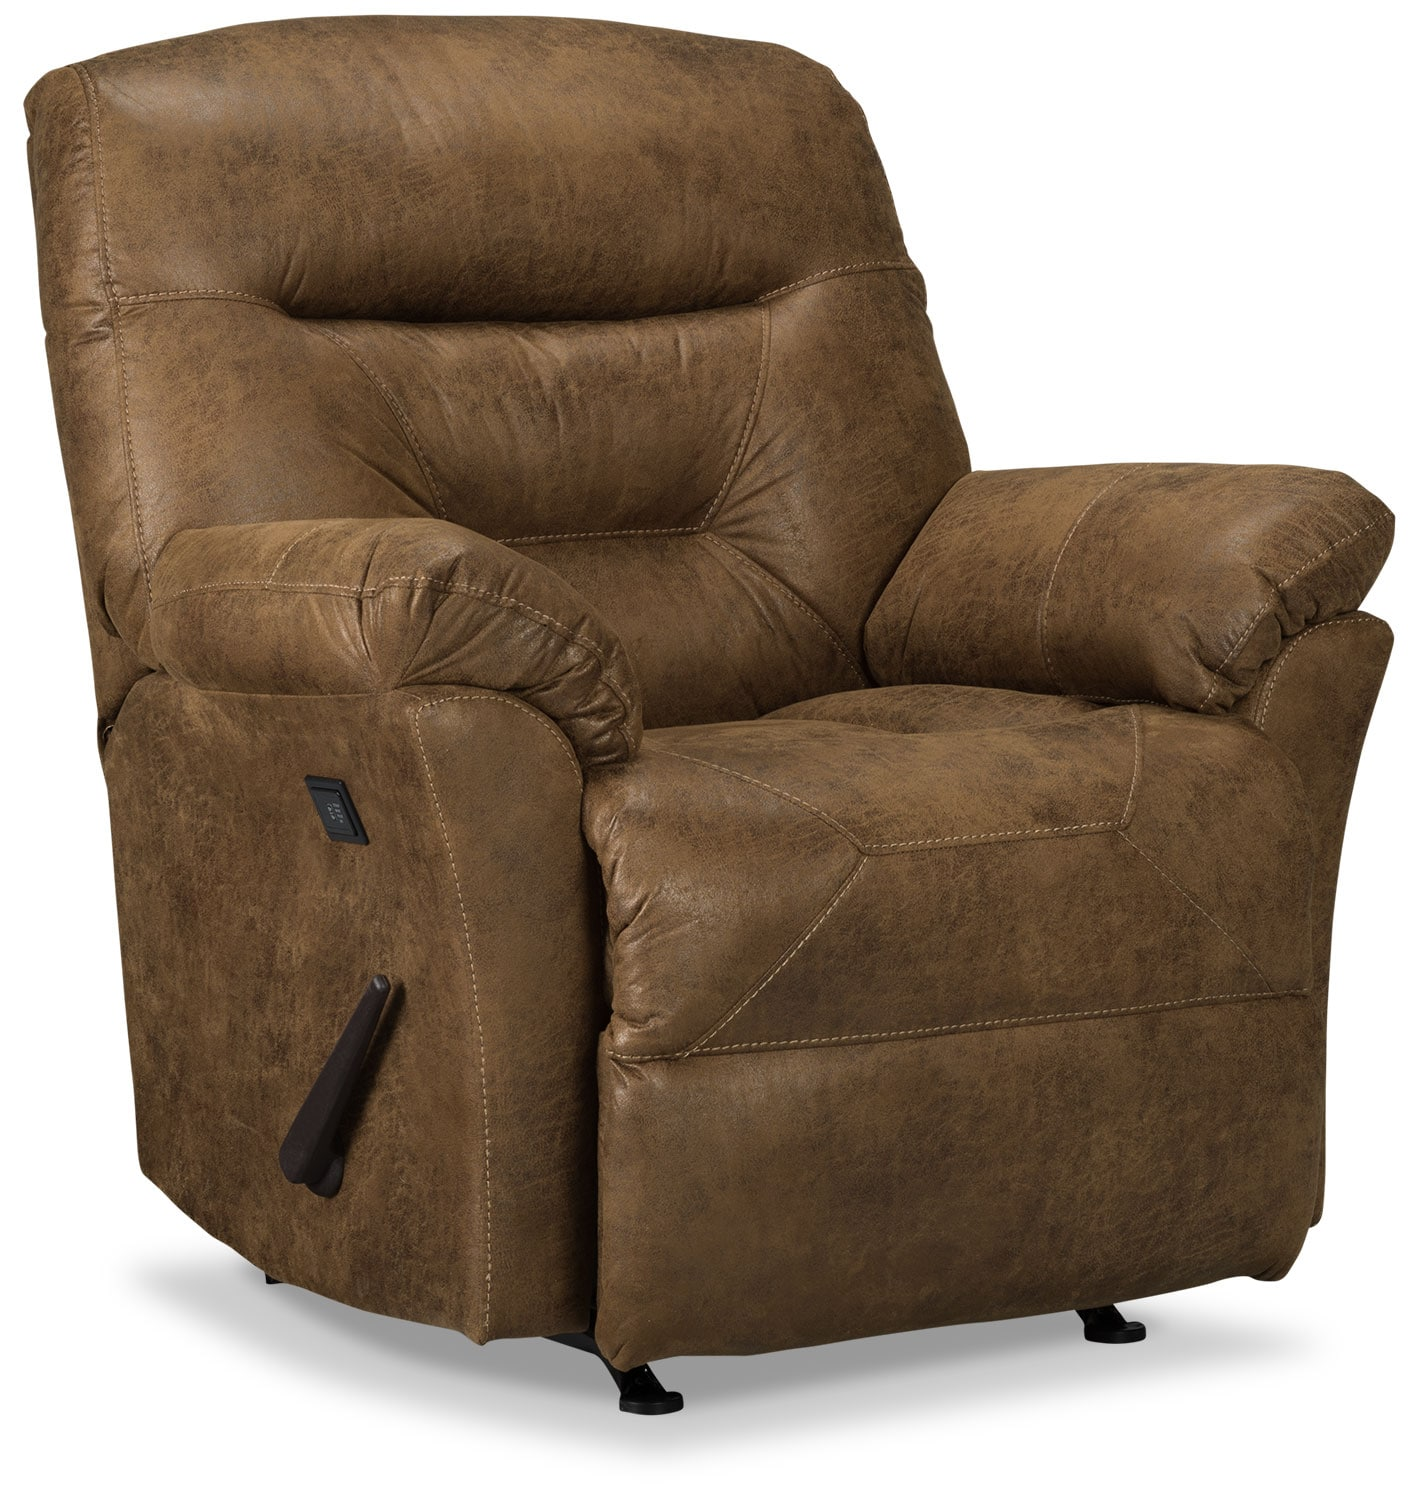 Designed2B Recliner 4579 Leather-Look Fabric Massage Recliner - Stout